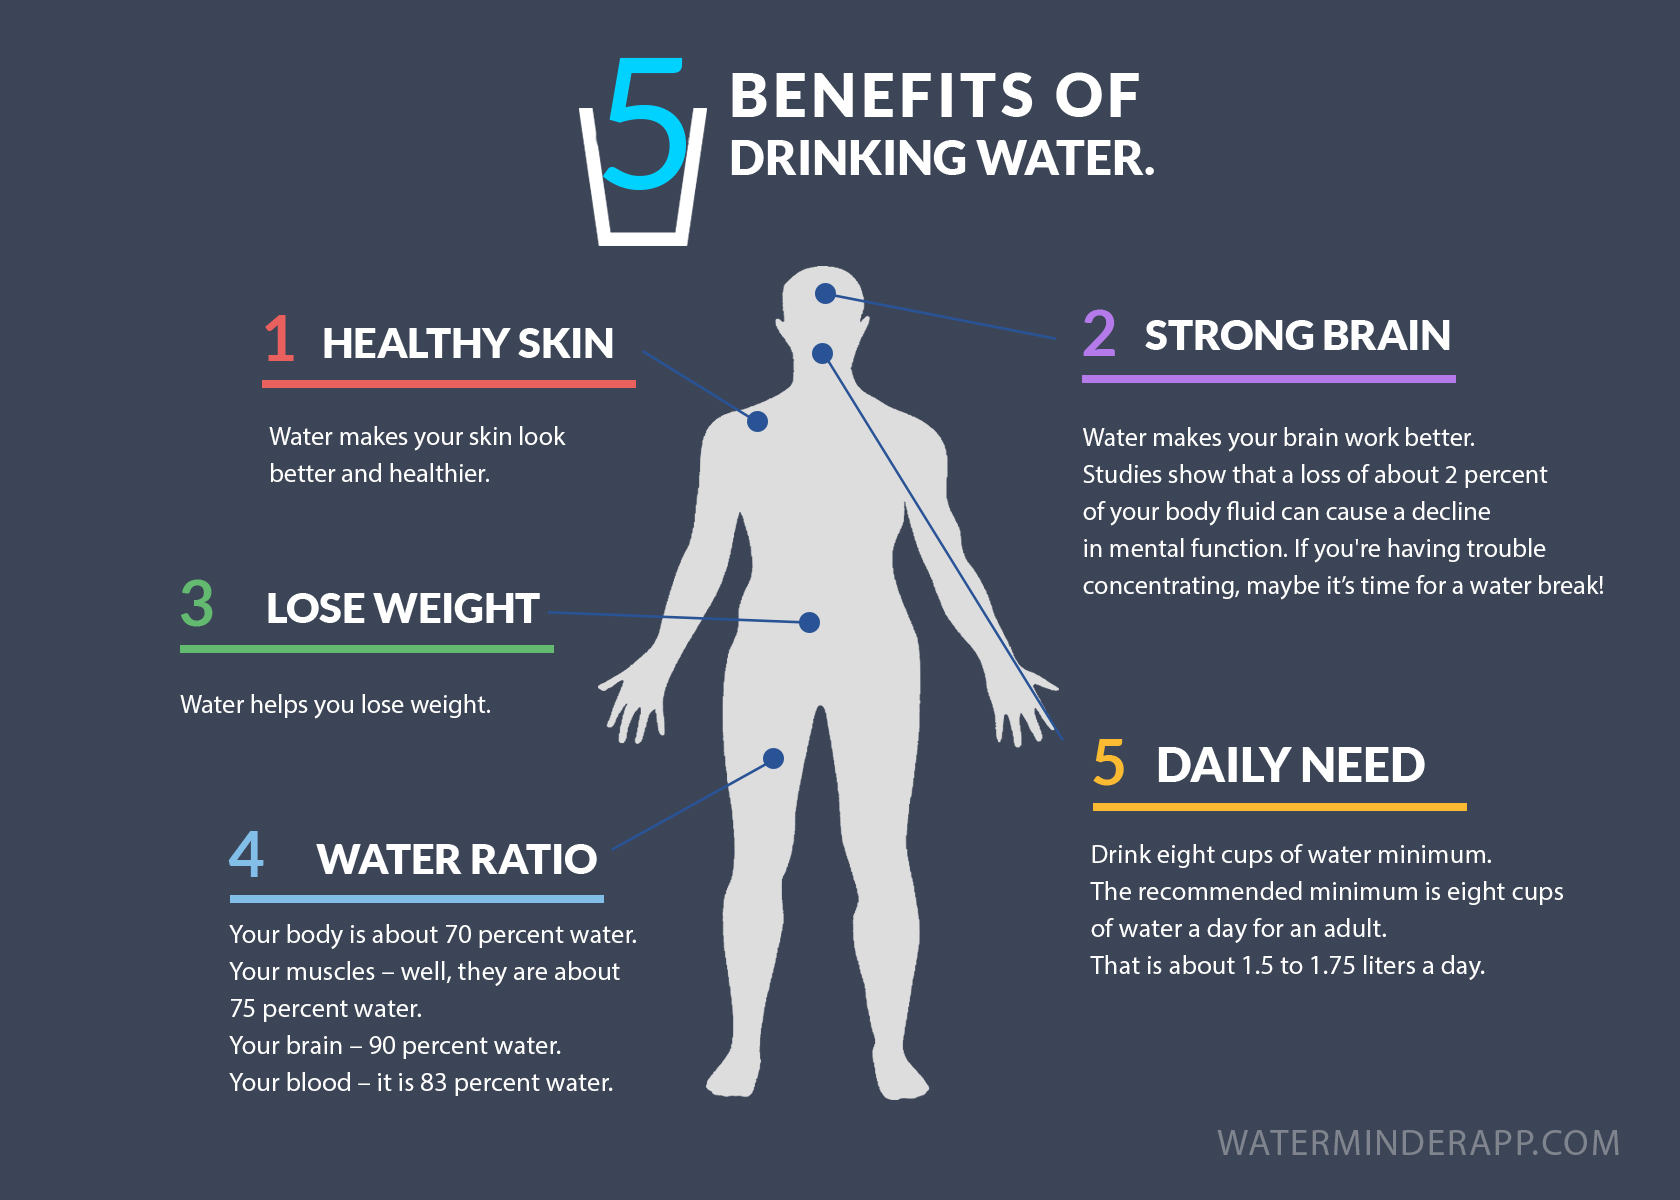 5-benefits-of-drinking-water-infographic